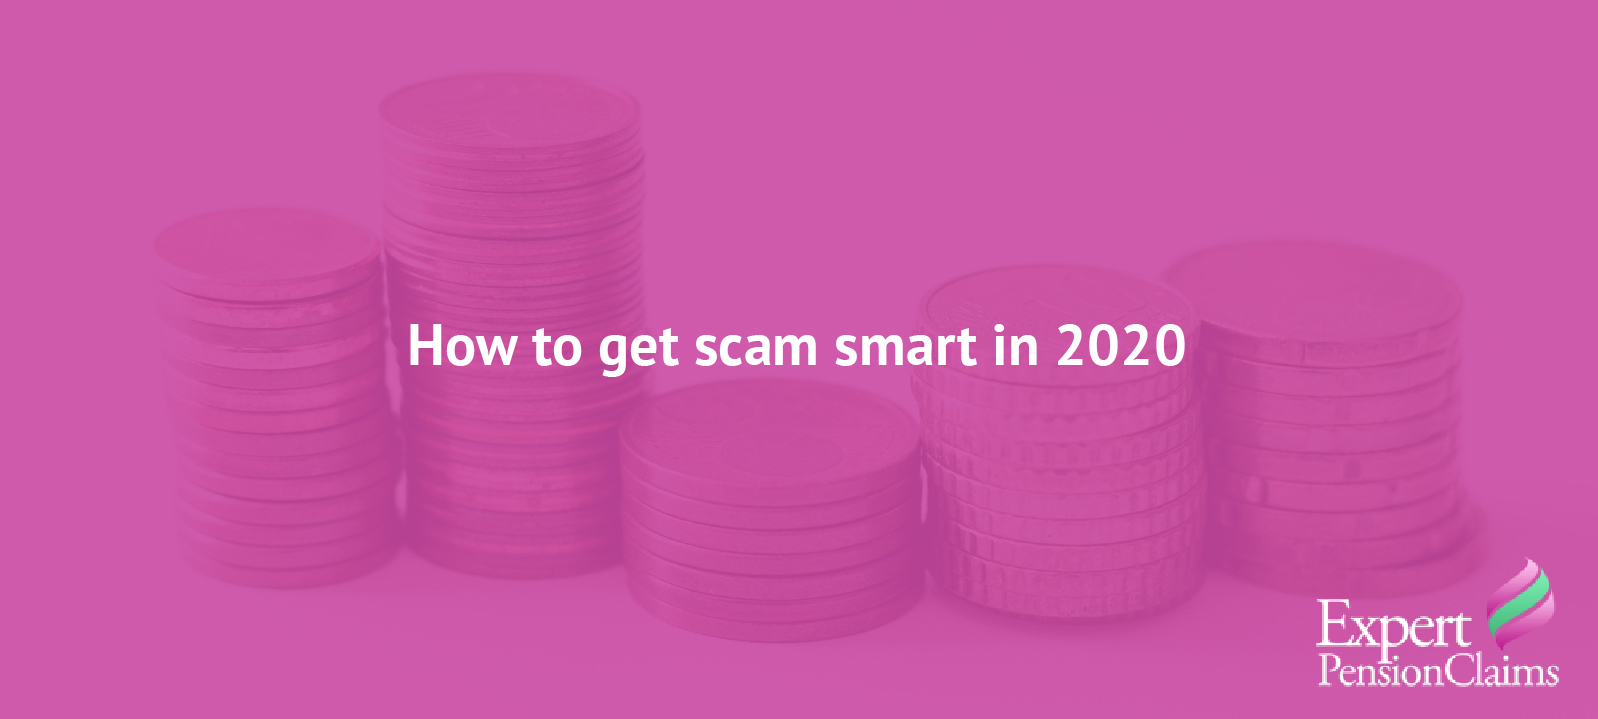 How to get scam smart in 2020